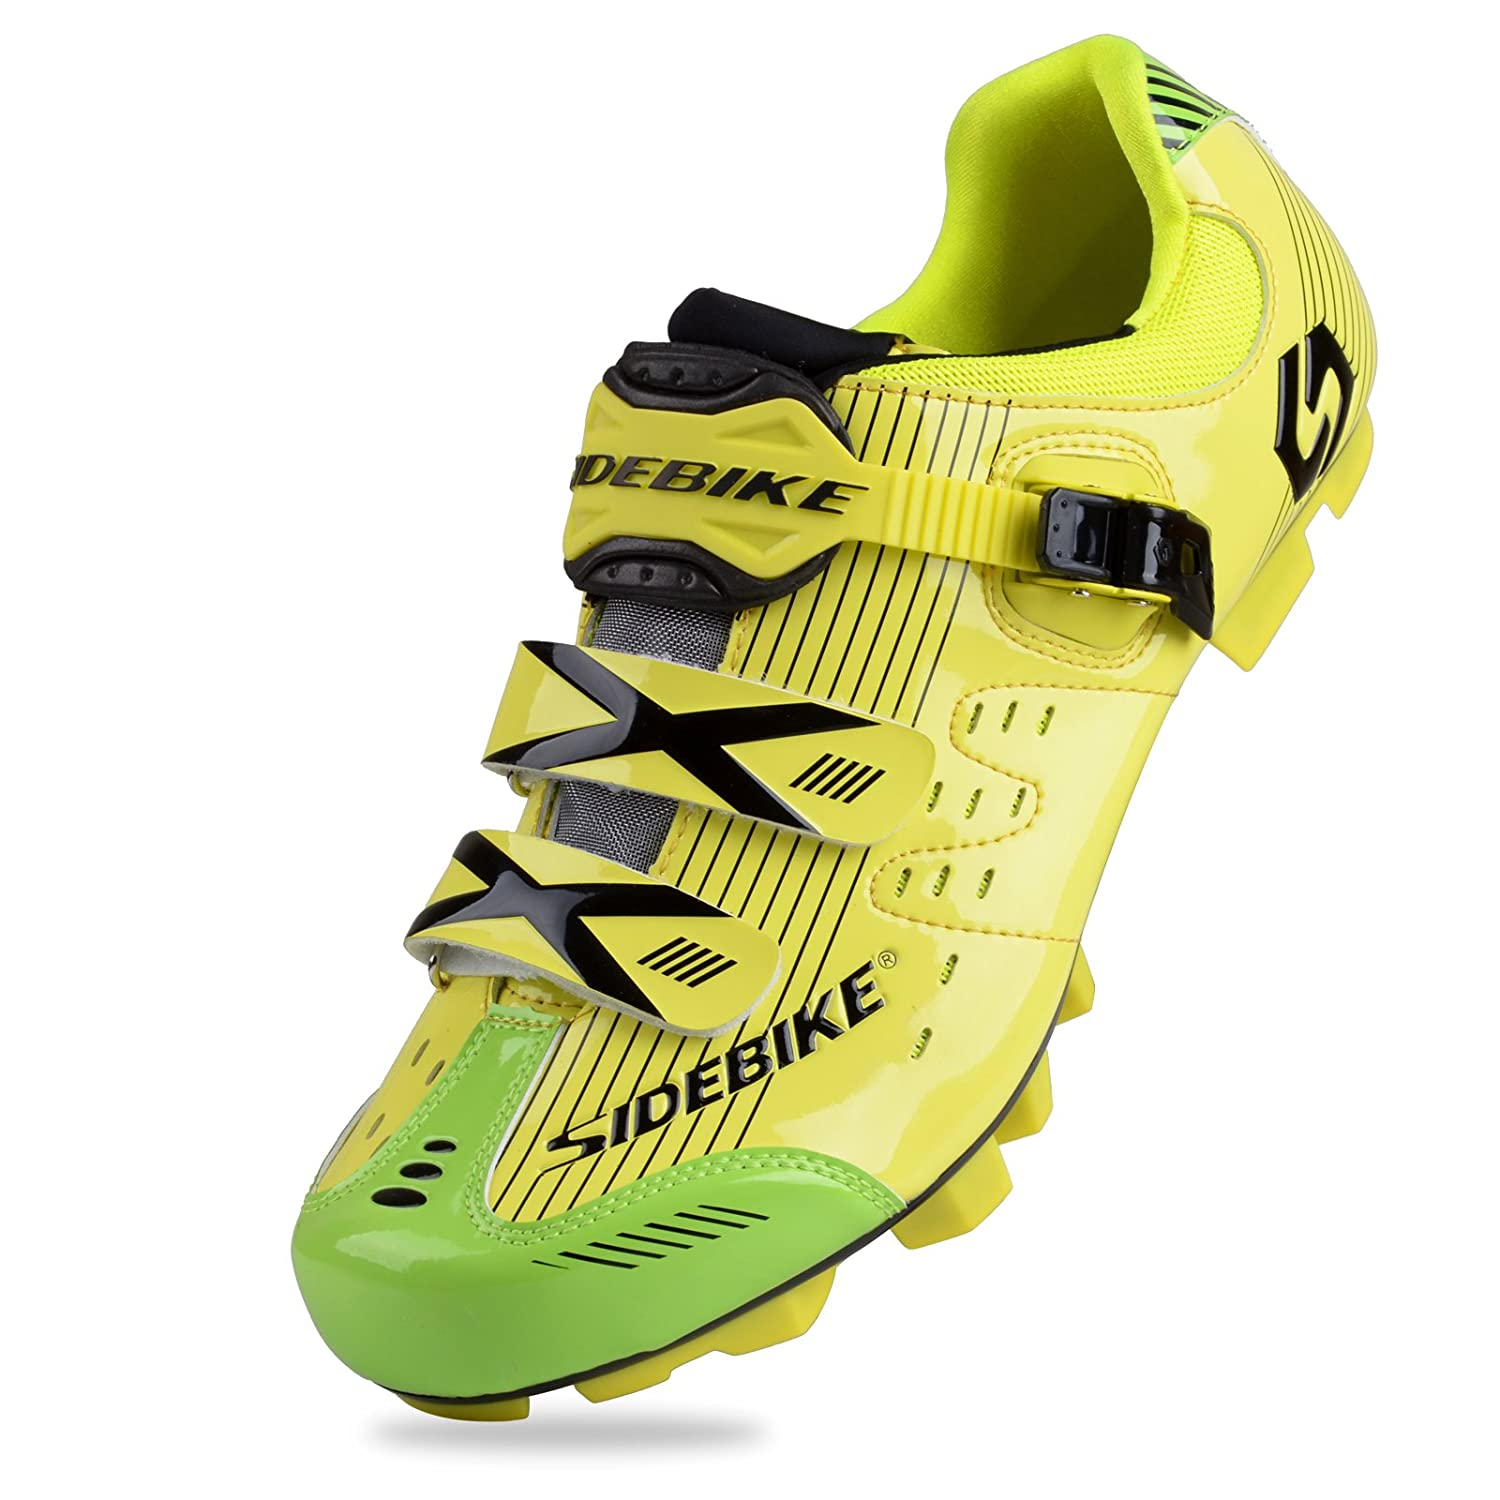 Yellow for MTB Smartodoors Sidebike SD002 Men's All-Around Road Cycling shoes with Carbon Soles